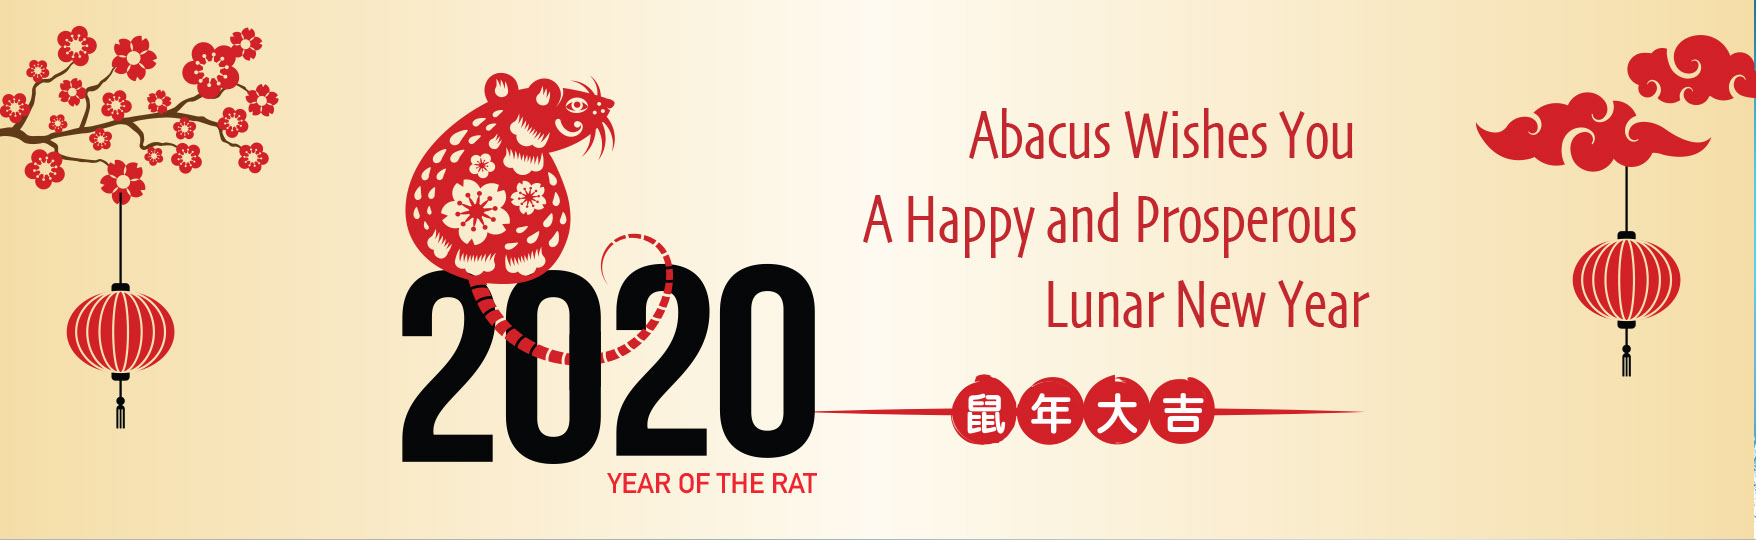 Abacus Wishes you a happy and prosperous lunar new year 2020 the year of rat